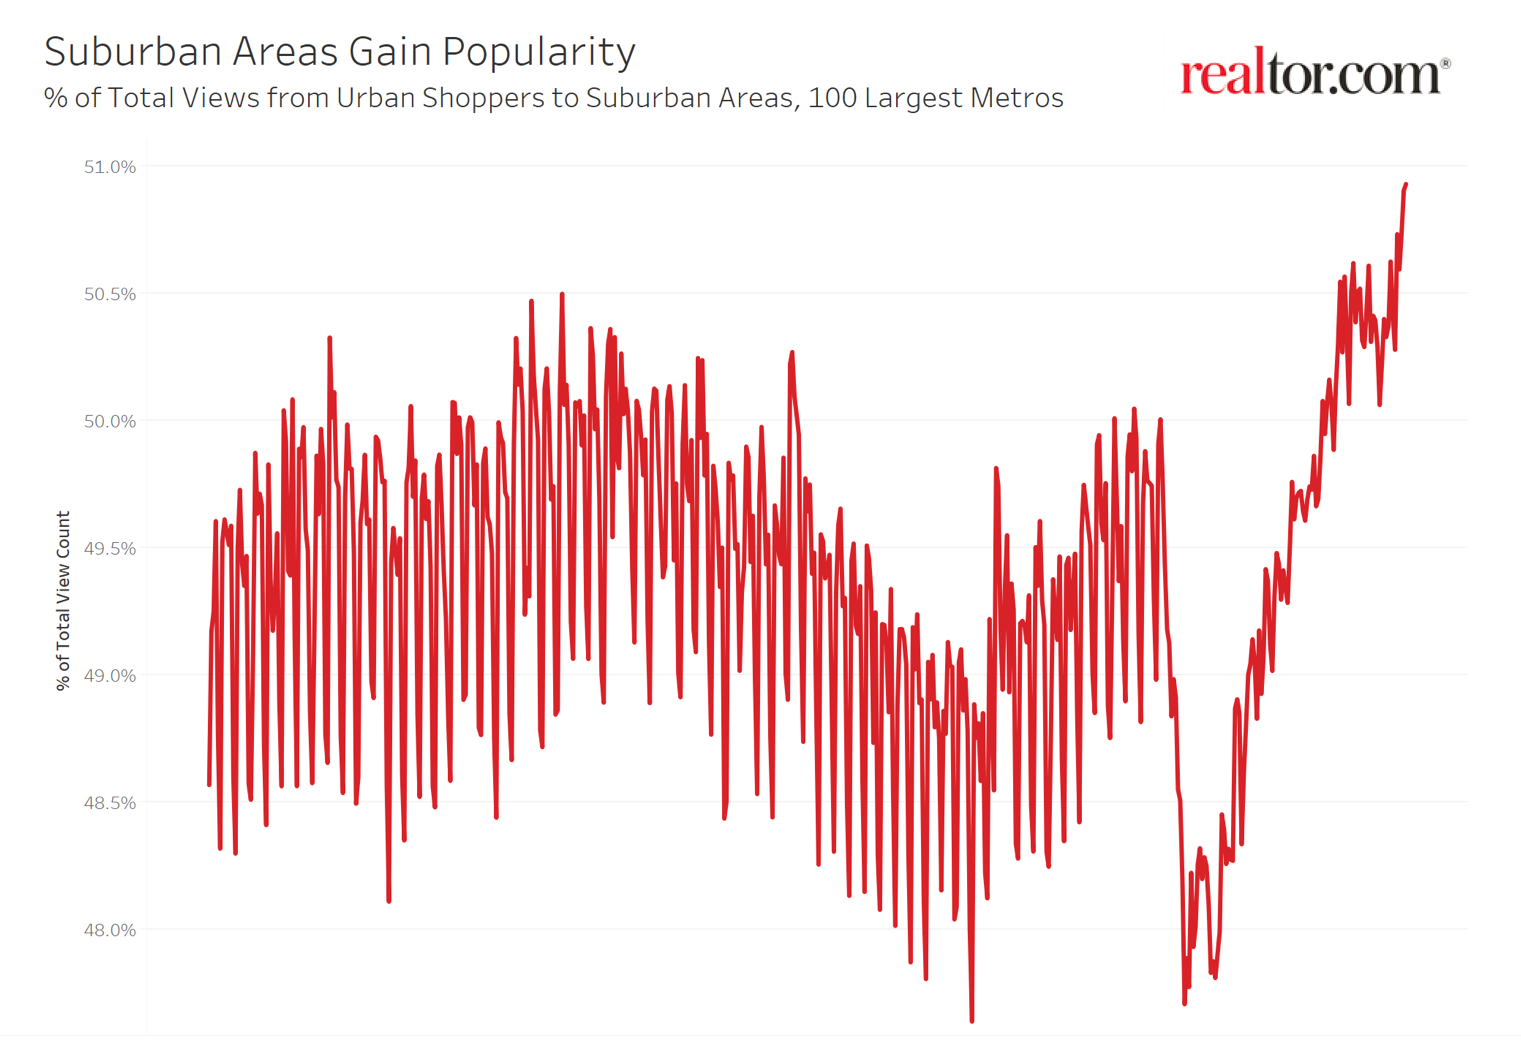 popularity of suburbs chart. Visit source link at the end of this article for more information.